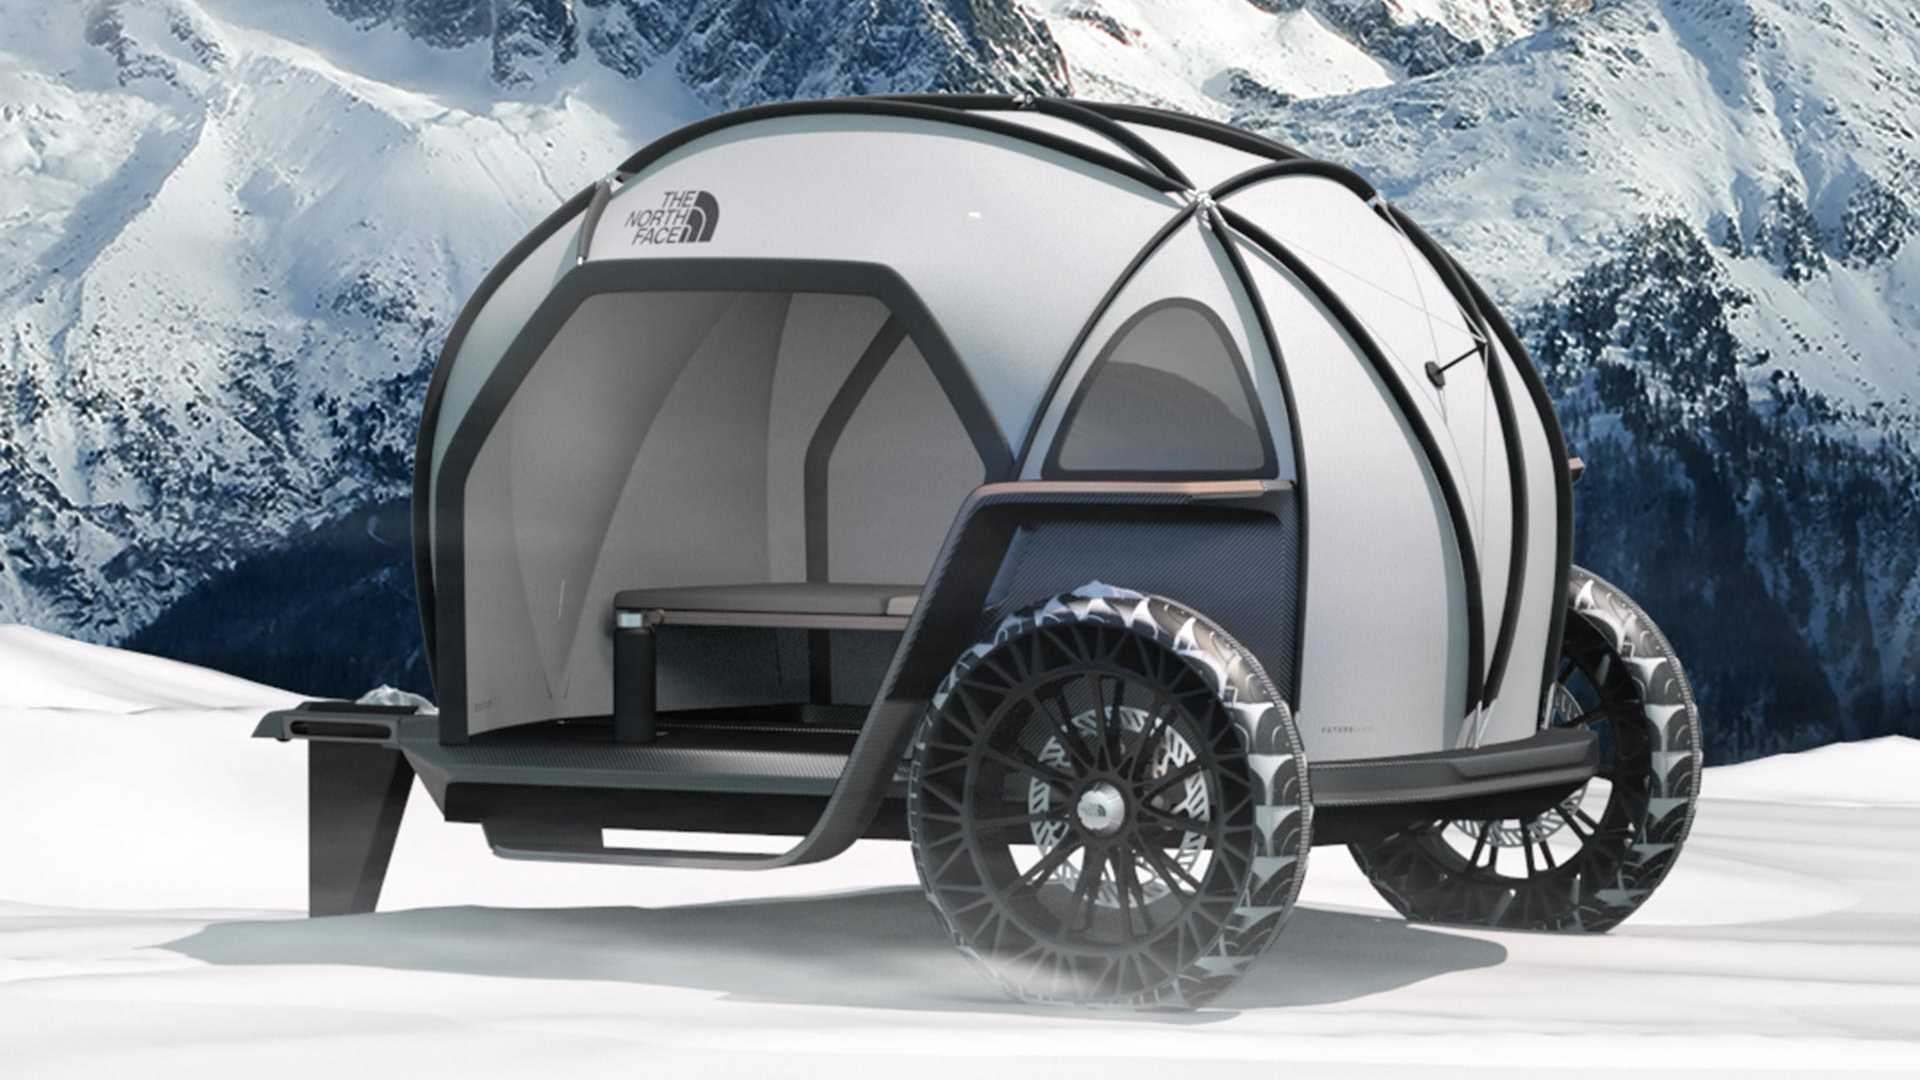 d25e8e334 BMW And North Face Camper Concept Looks Like Arctic Isetta